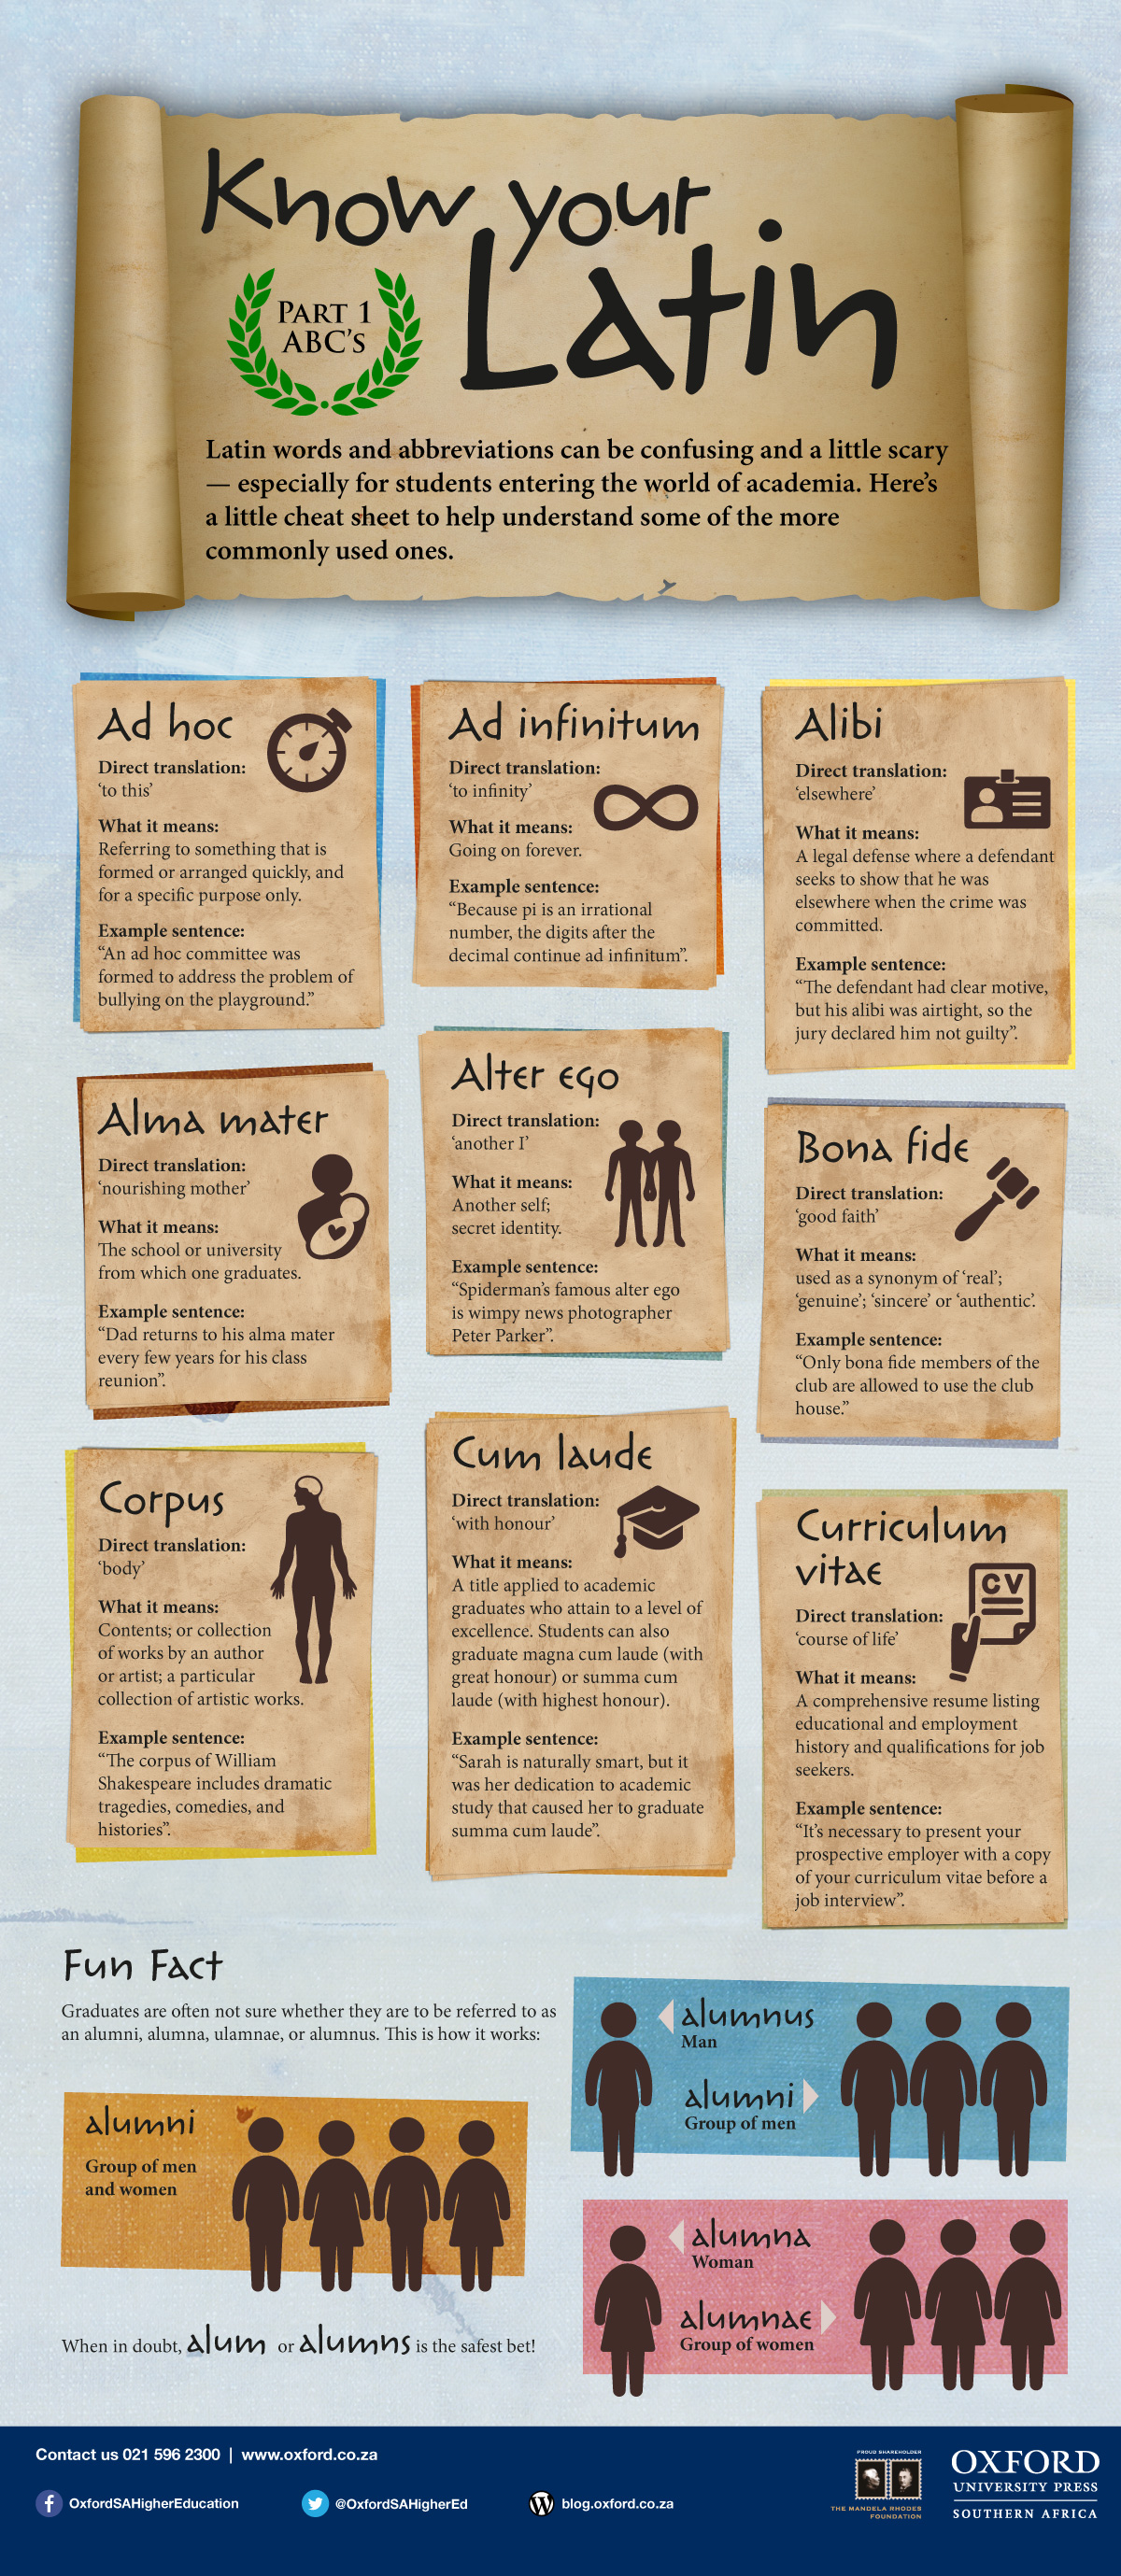 hed_dig_13212_16_he_nov_infographic-know-your-latin-part-1